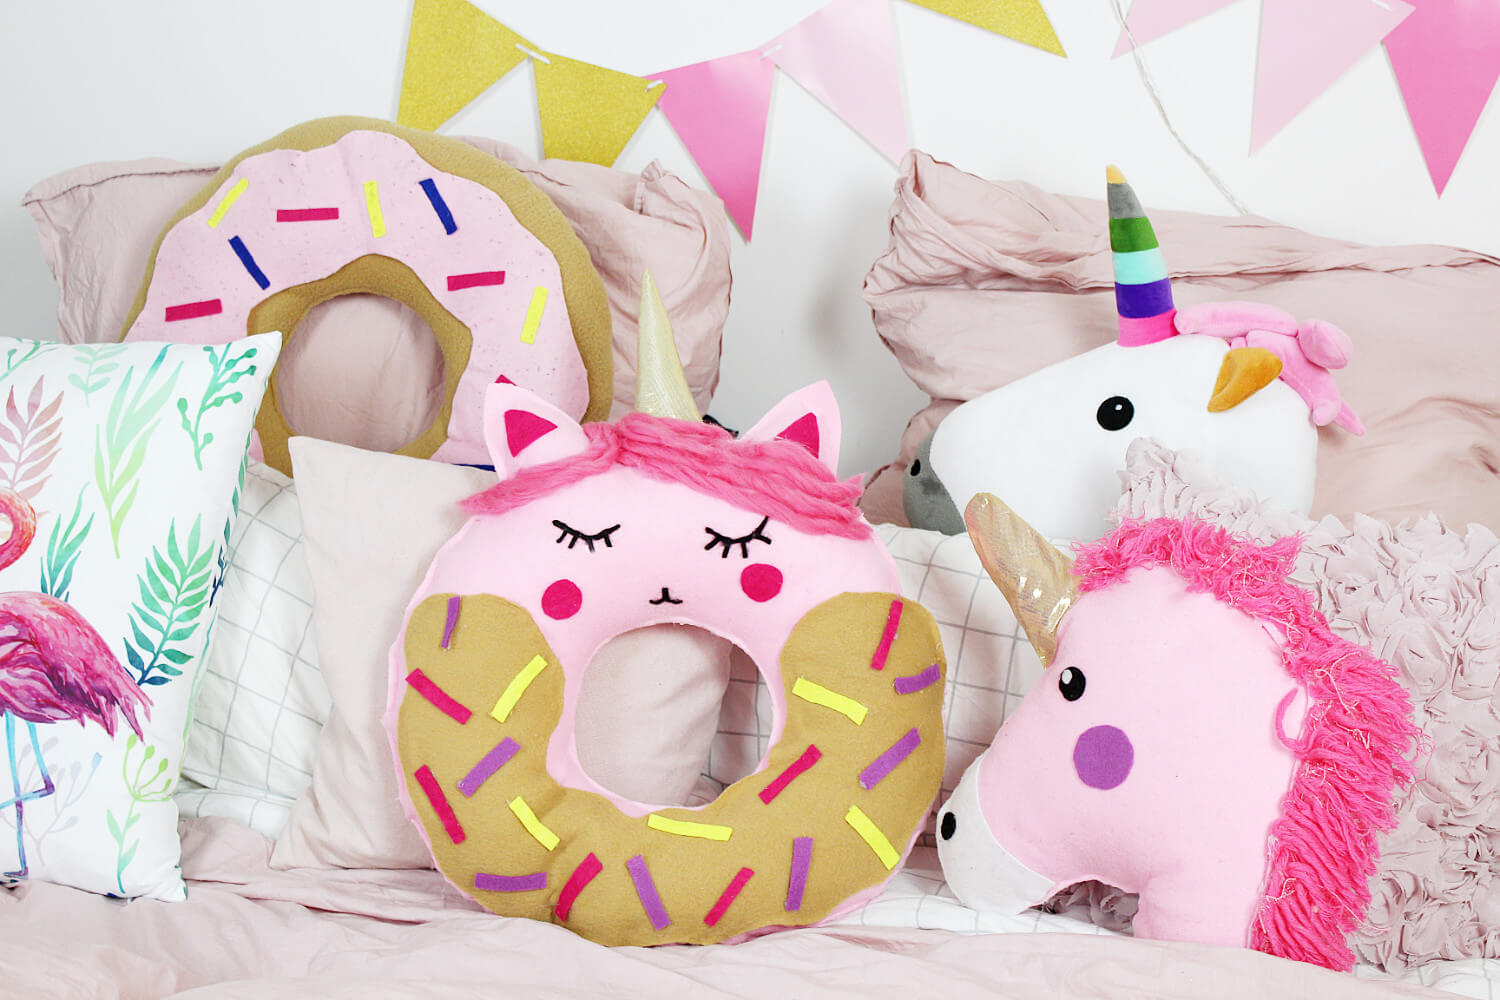 diy donut kissen mit einhorn motiv selber machen. Black Bedroom Furniture Sets. Home Design Ideas